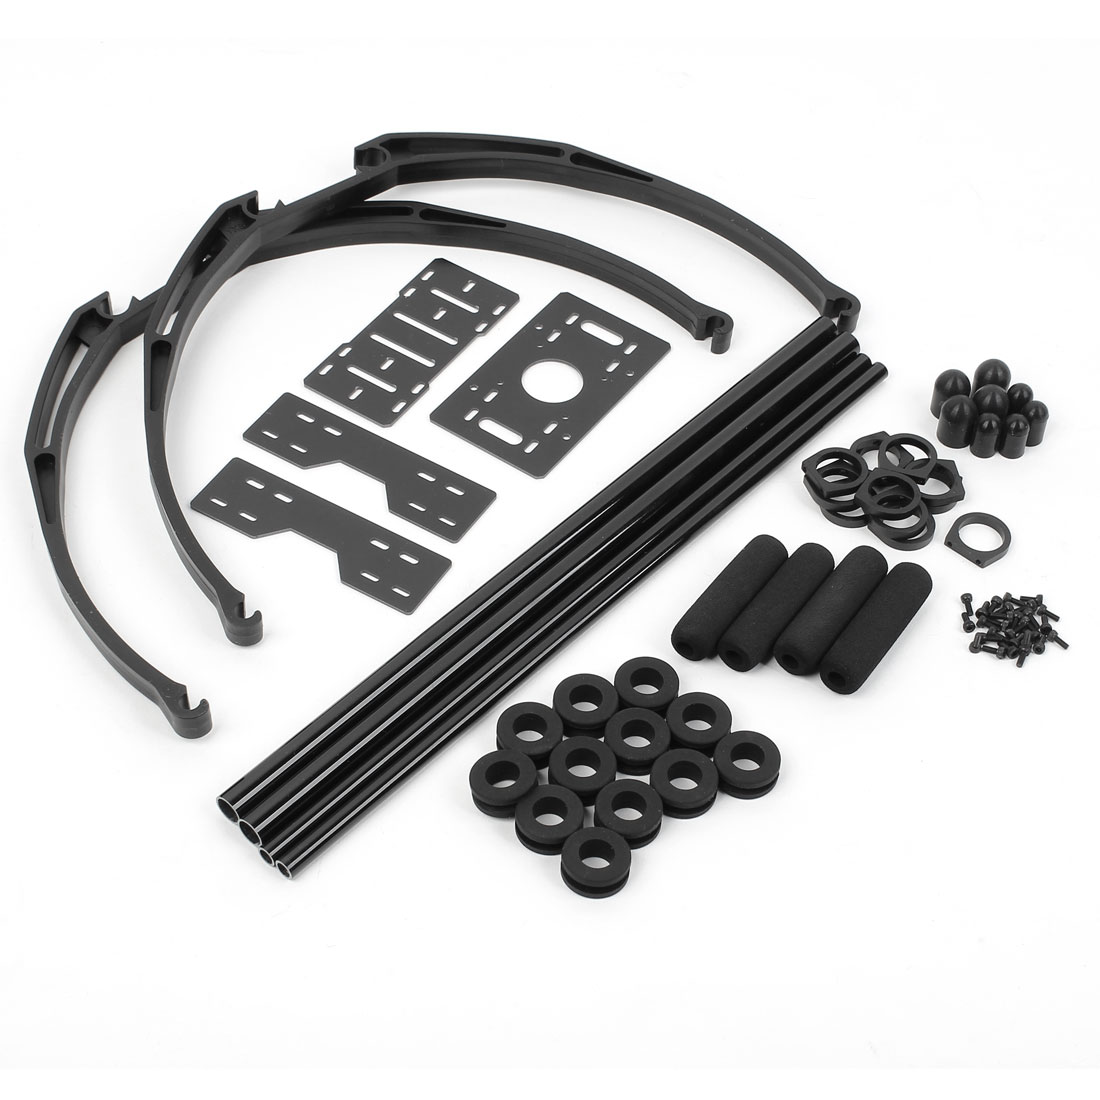 FPV Anti-Vibration Multifunction Landing Skid Kit for DJI F450 F550 Quadcopter